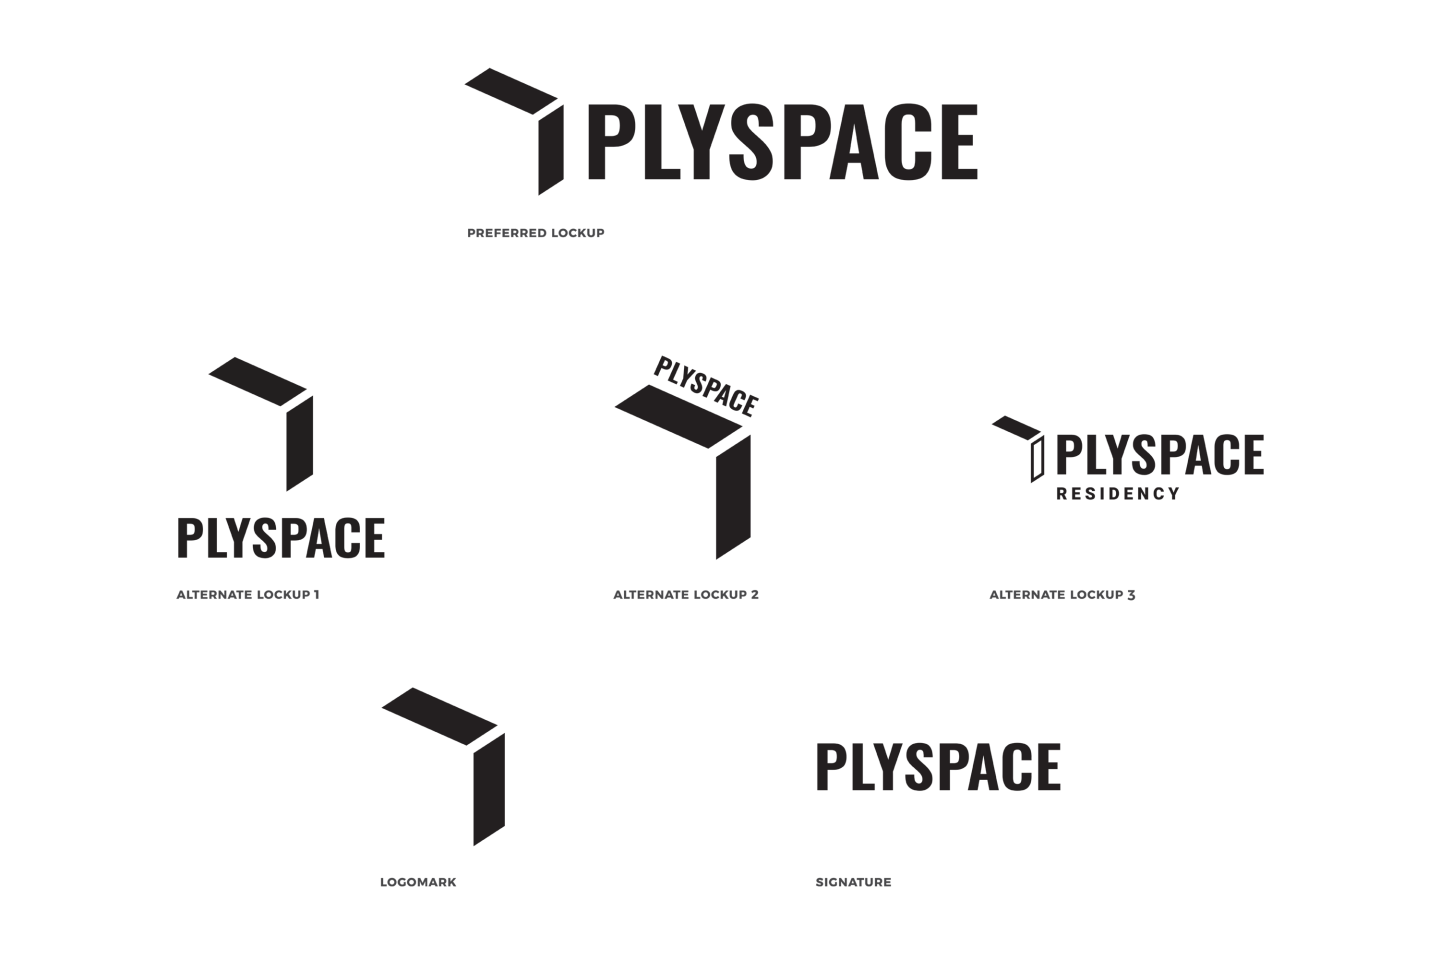 The black logo lockups for the PlySpace design system